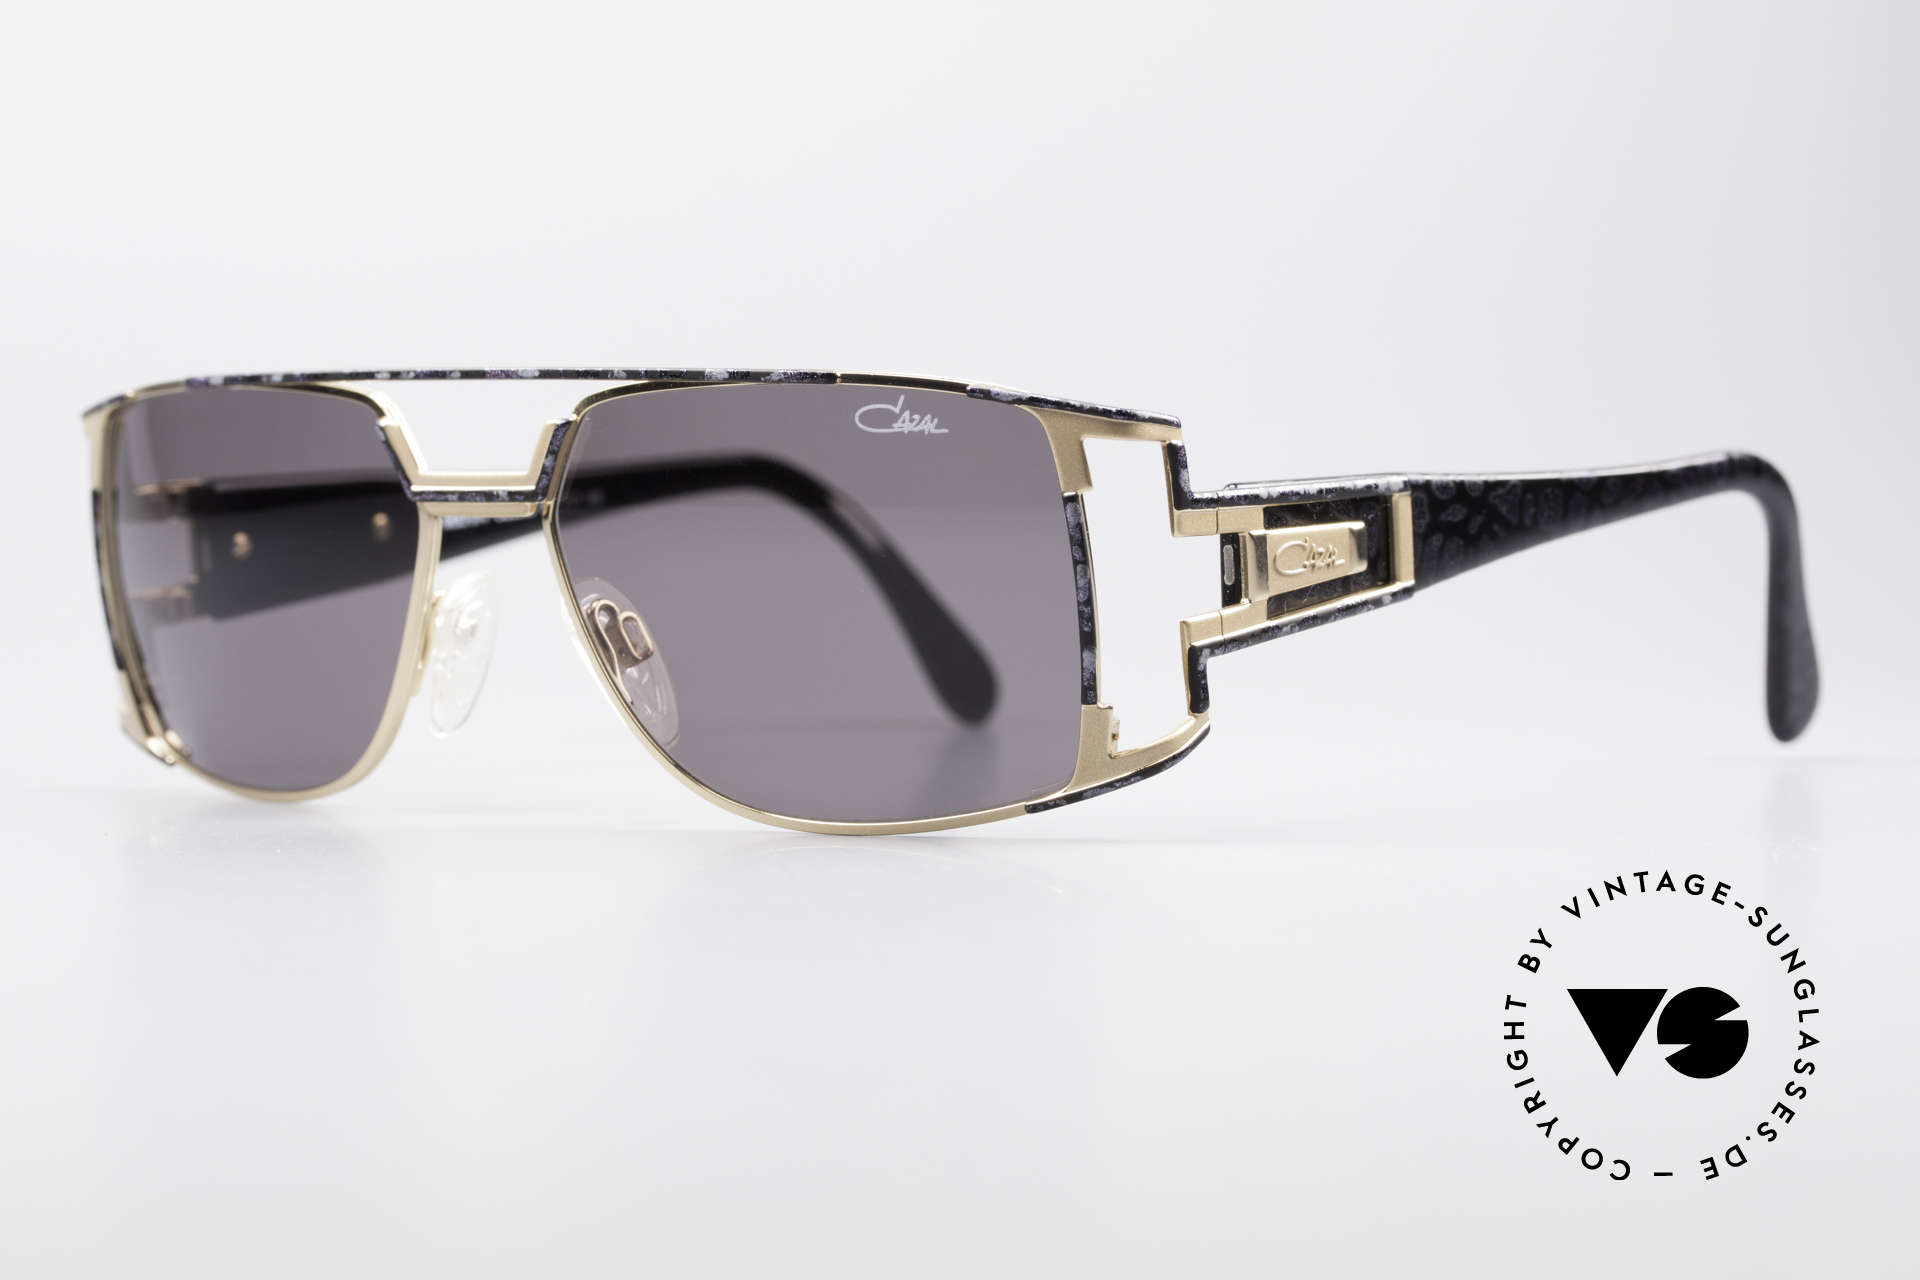 Cazal 974 Unisex Shades Ladies Men, in addition a very noble color concept: violet mottled, Made for Men and Women